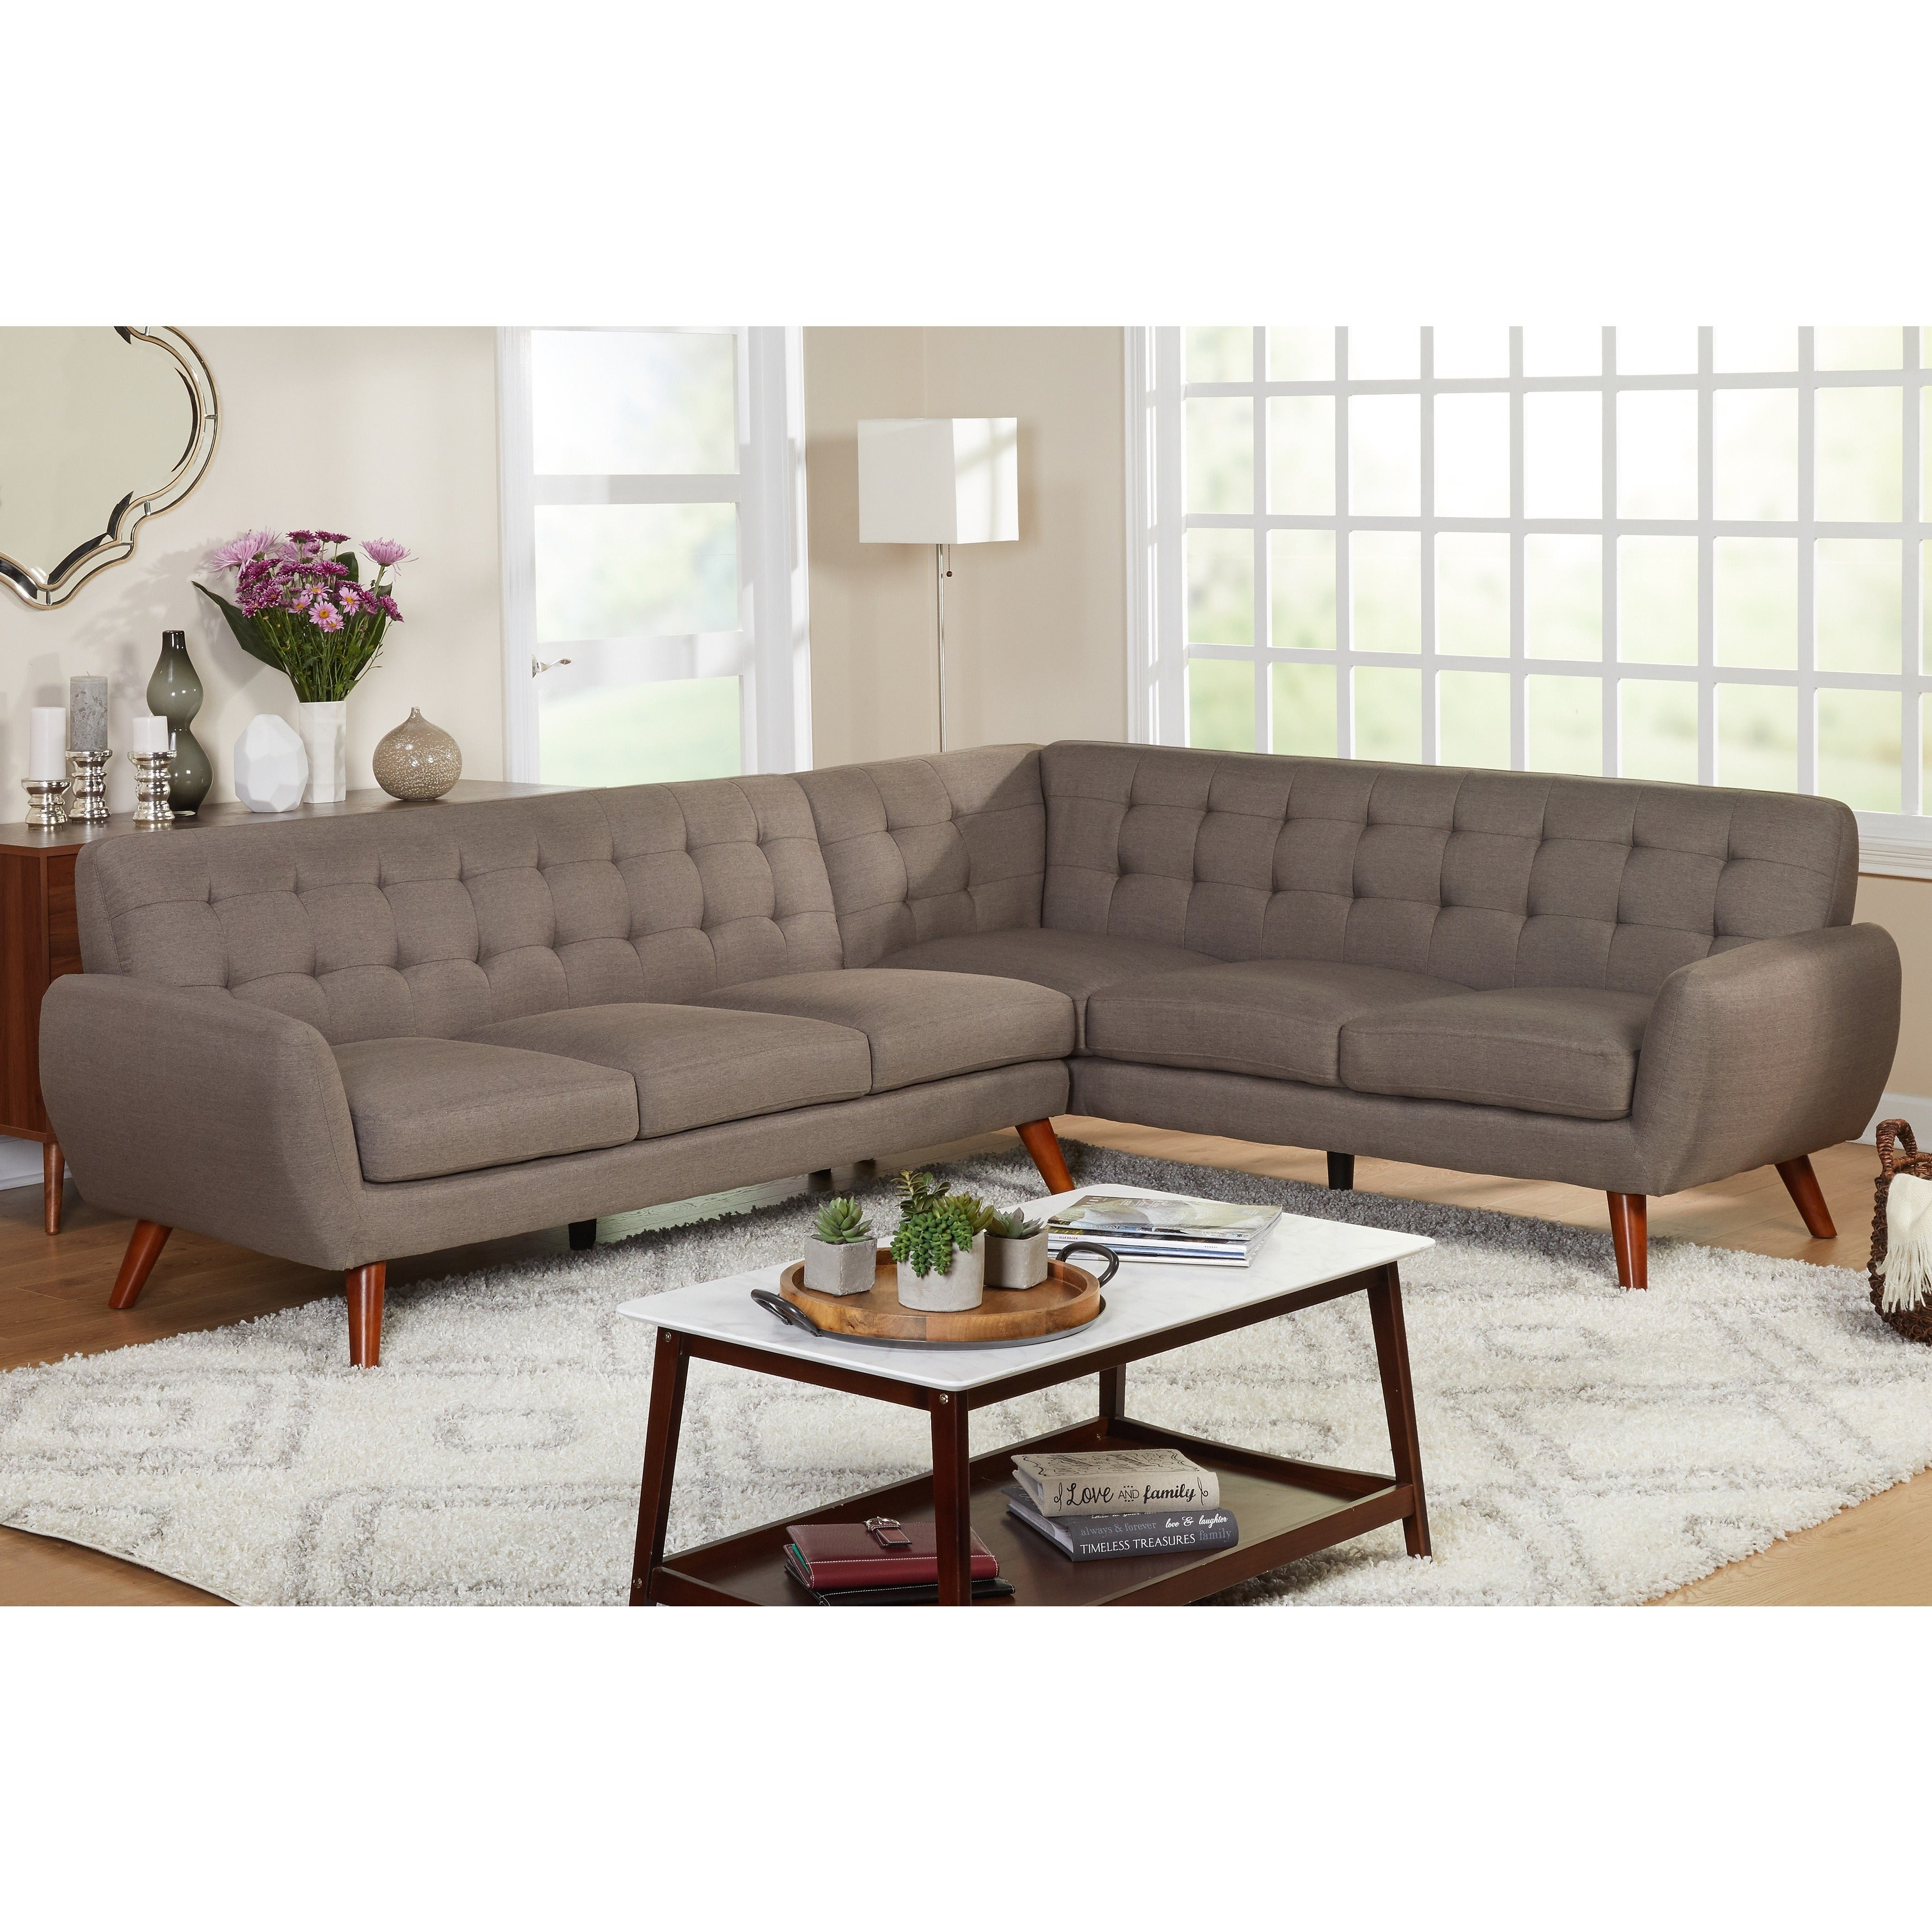 Shop Simple Living Livingston Mid Century Tufted L Shaped Sectional